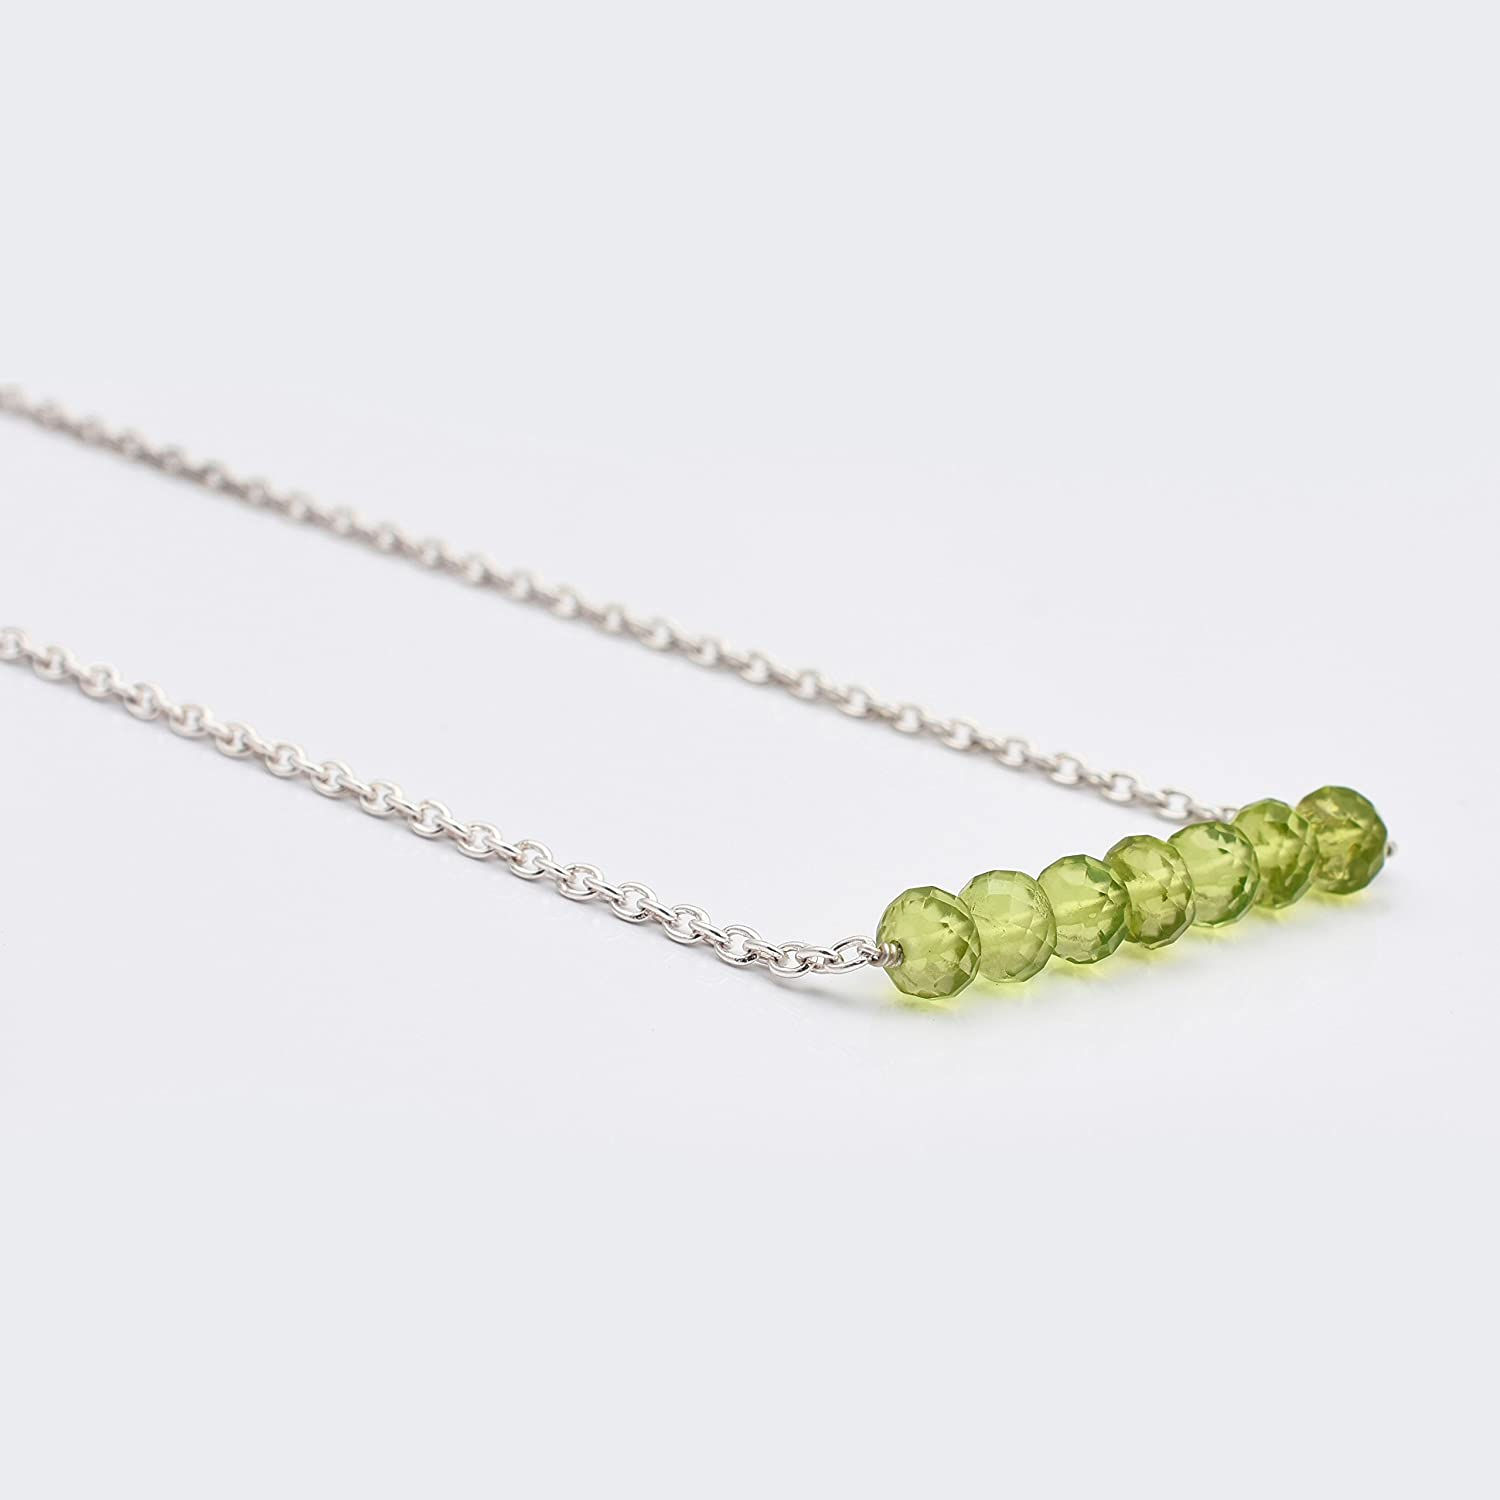 Peridot Beads Bar Necklace with Sterling Silver Chain Handmade Gemstone Beaded Jewelry 16'